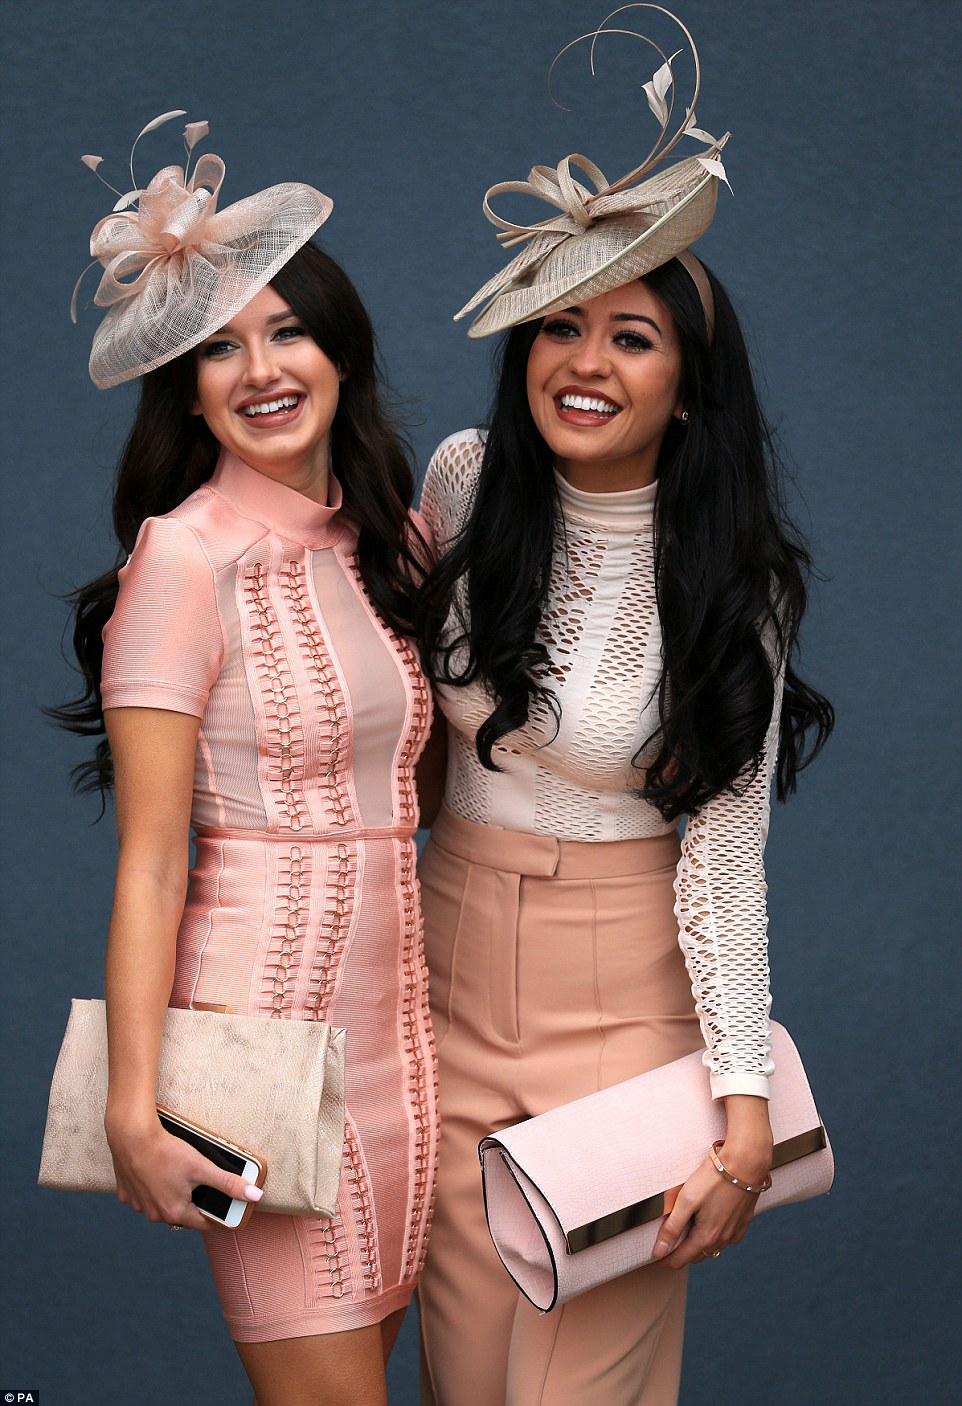 Two girls who look like they could be sisters were a vision in co-ordinated shades of pink